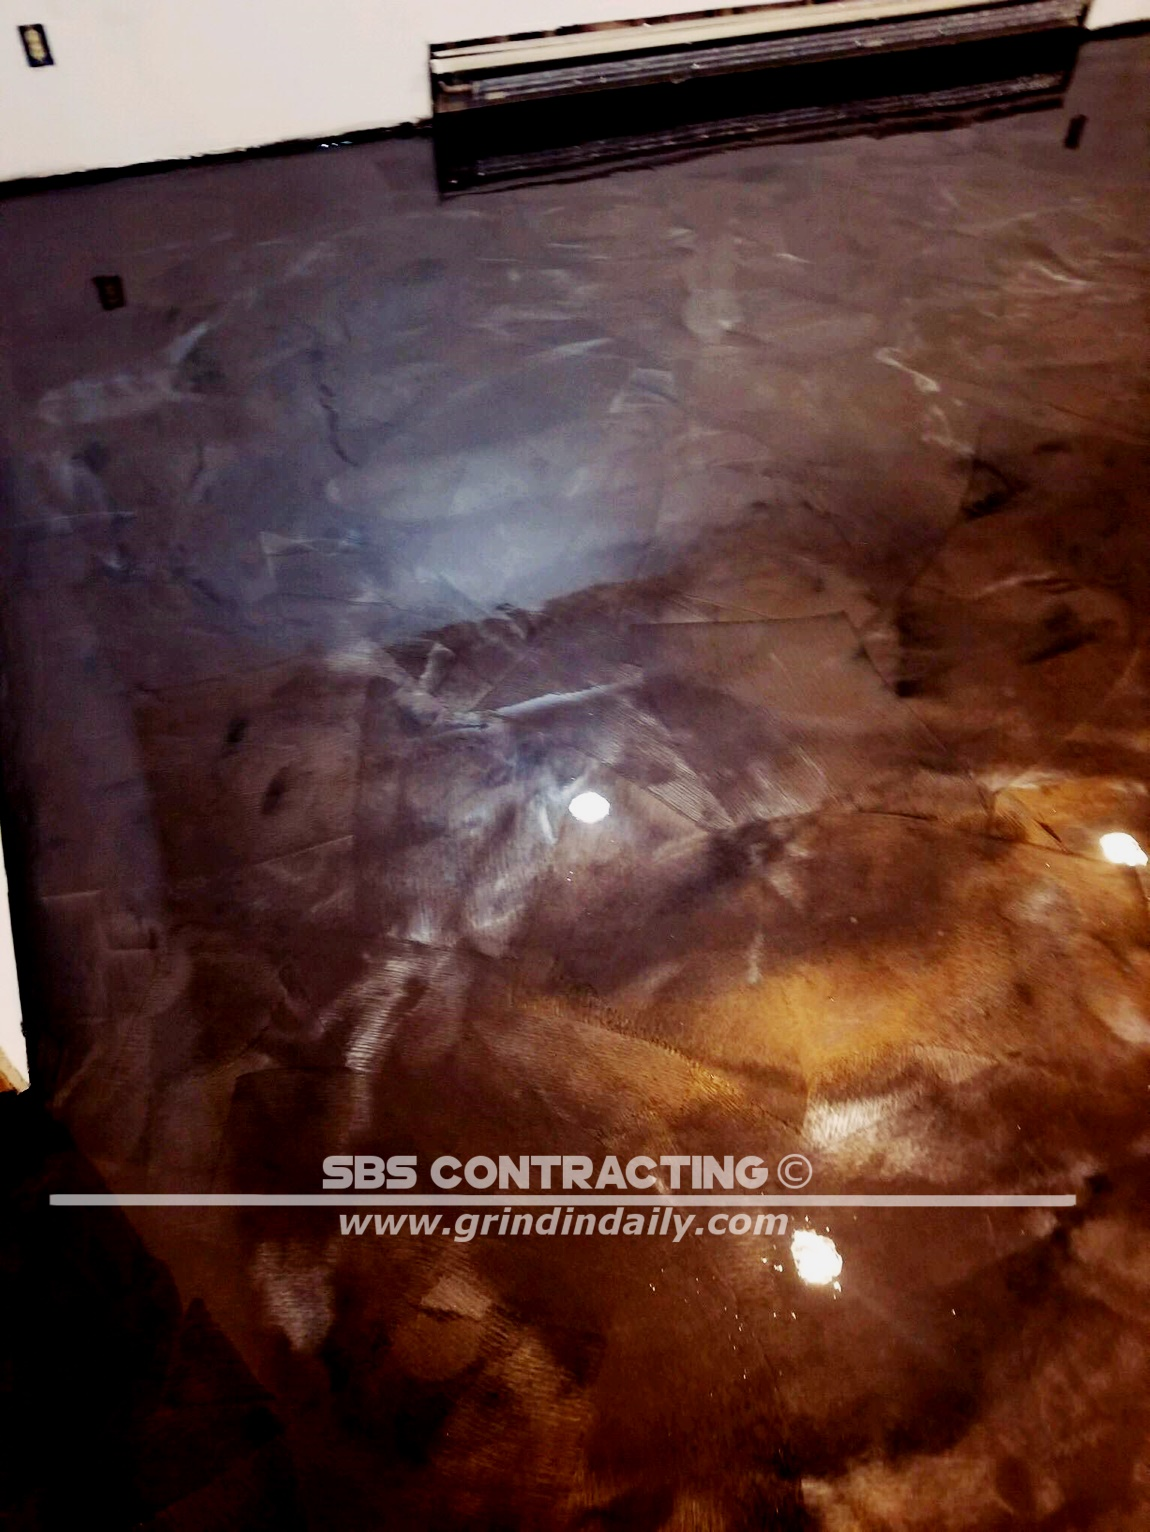 SBS-Contracting-Concrete-Stain-Project-Metallic-02-2018-01-03